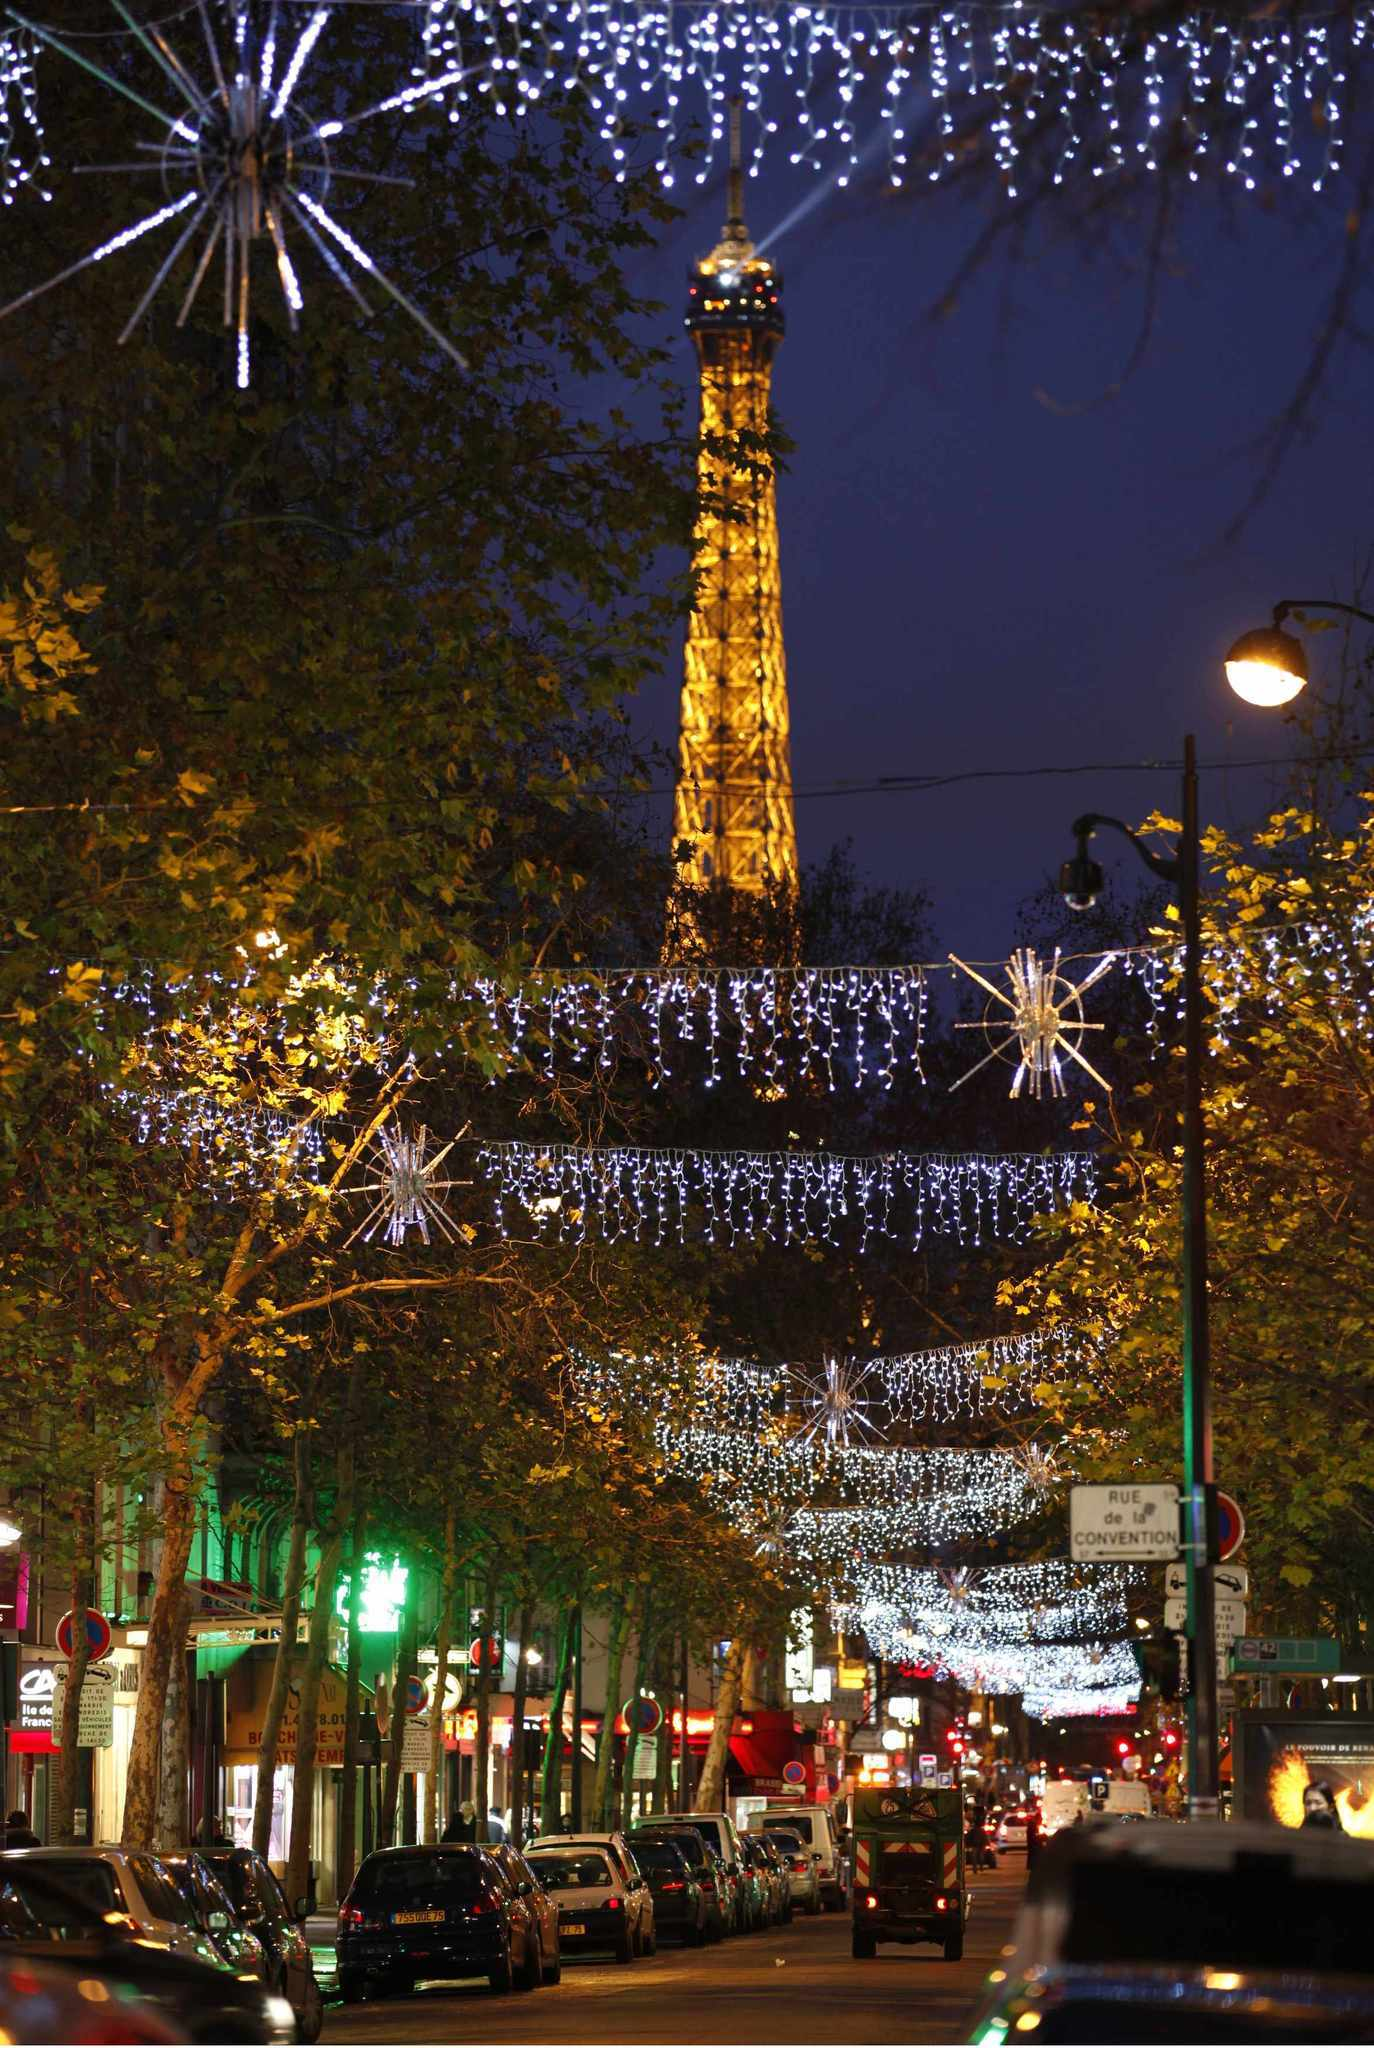 Pictures: Holiday lights from around the globe - Christmas in Paris